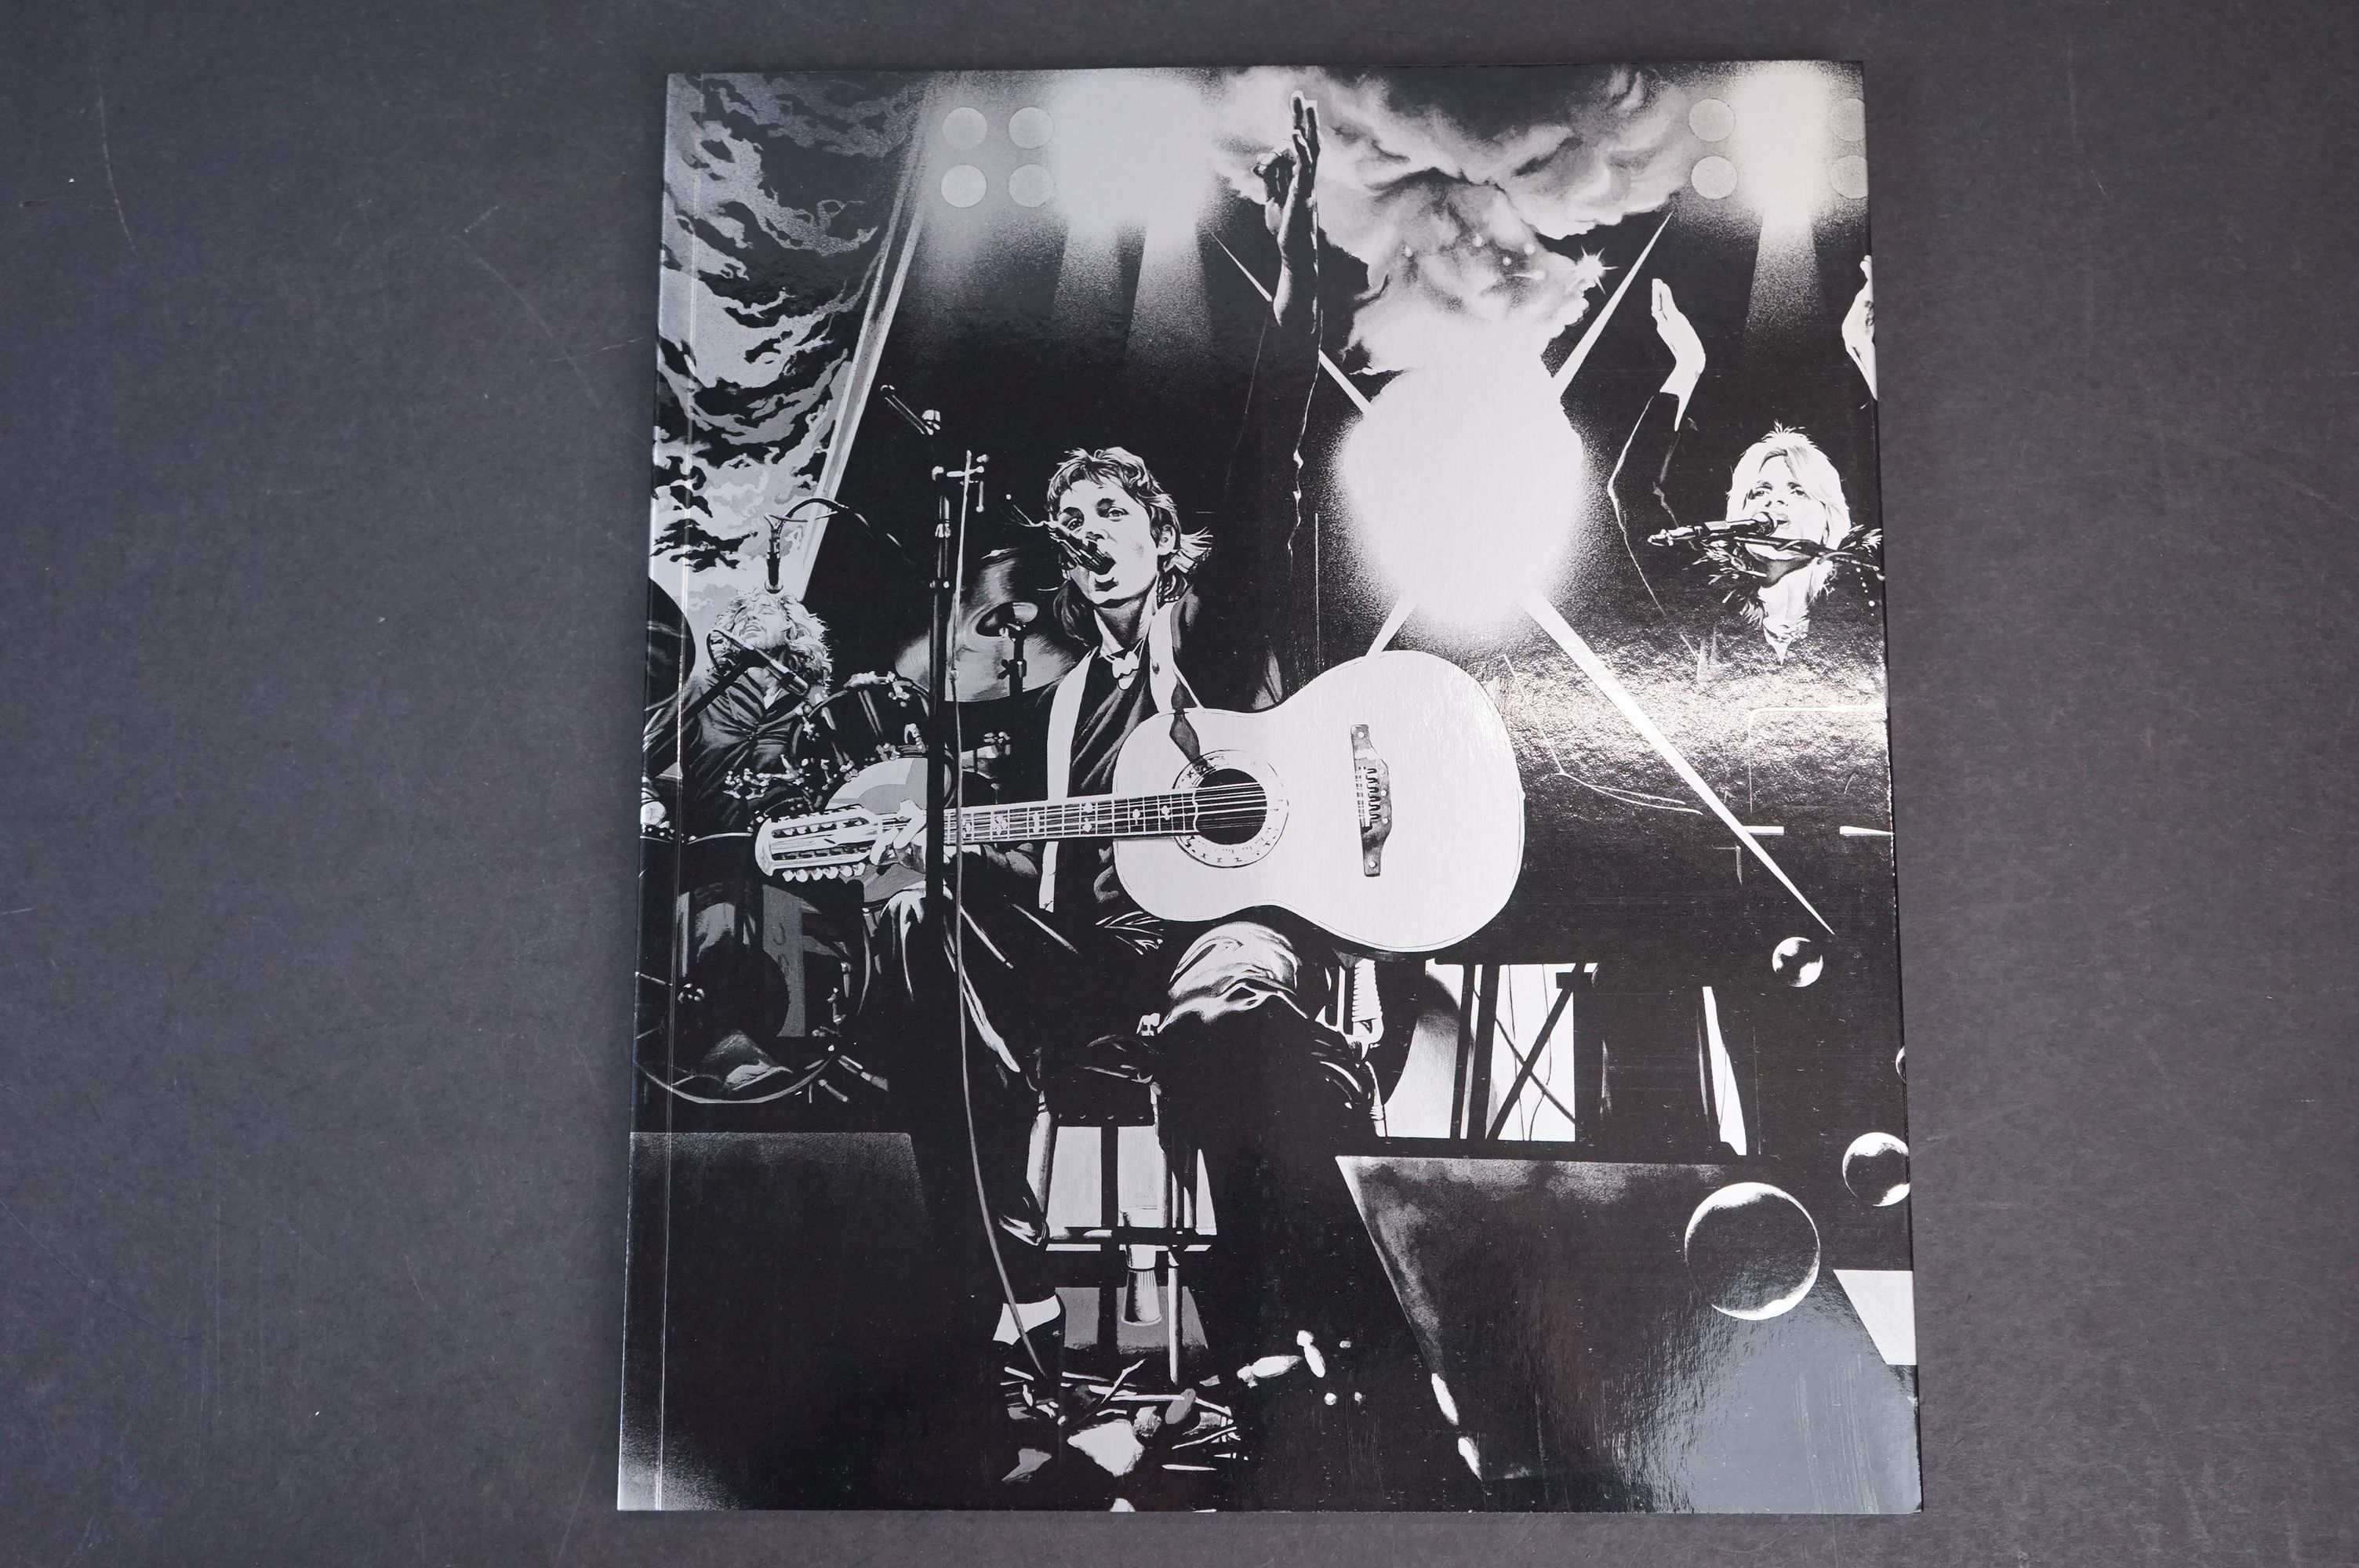 Box Set - Paul McCartney & Wings - Wings Over America numbered box set (03555) deluxe box set, ex - Image 6 of 18